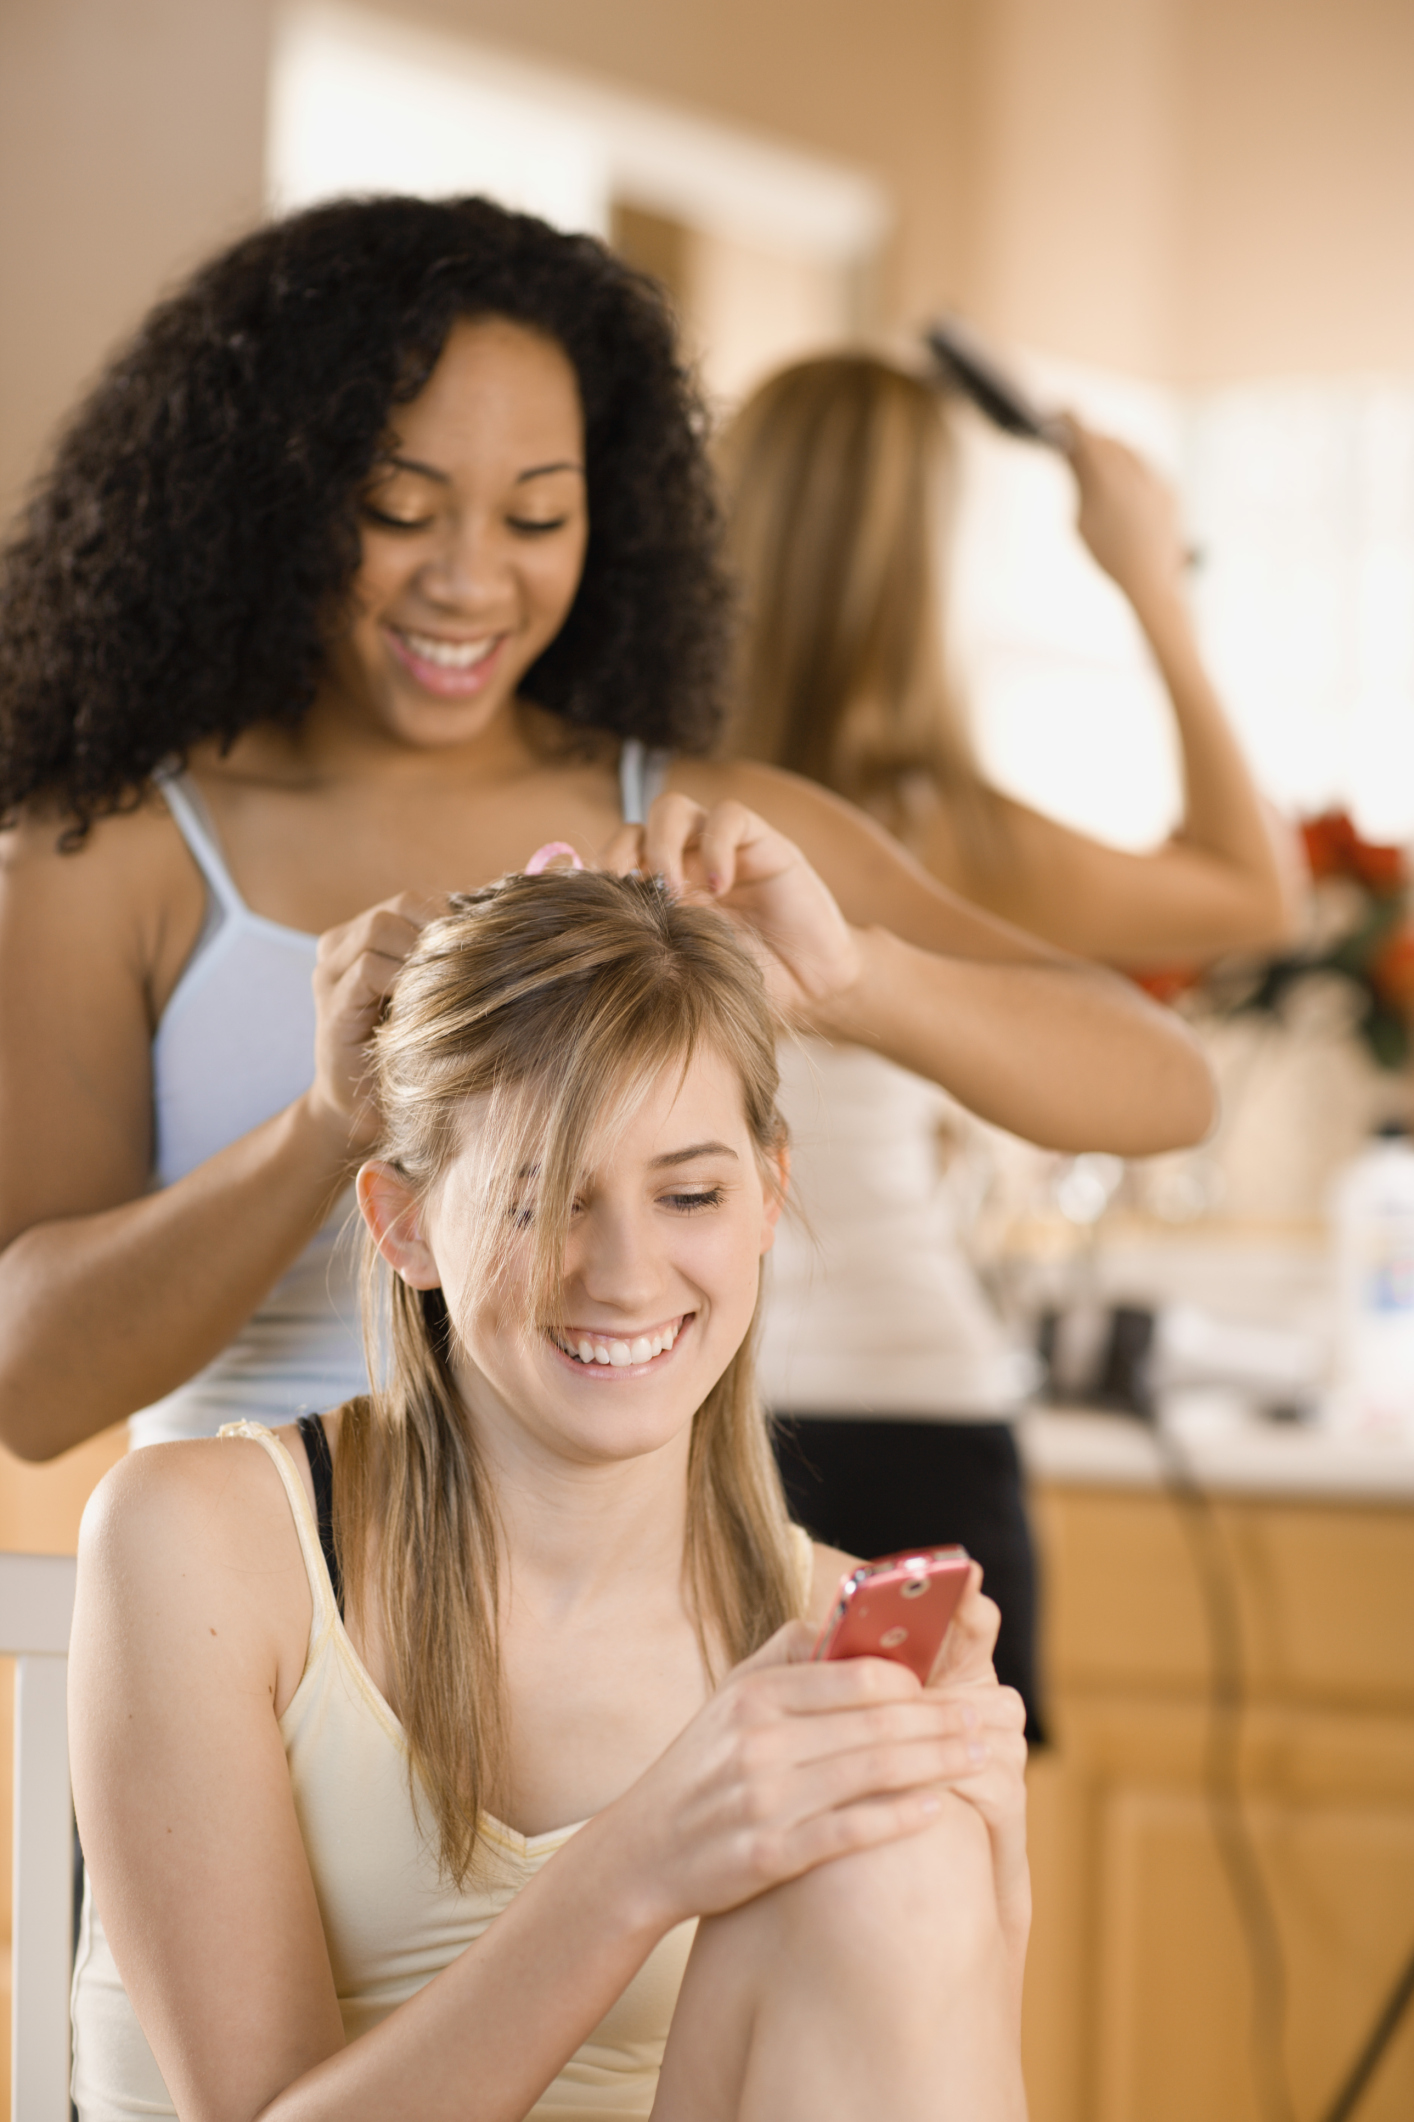 do-you-need-a-high-school-diploma-or-ged-to-get-into-beauty-school